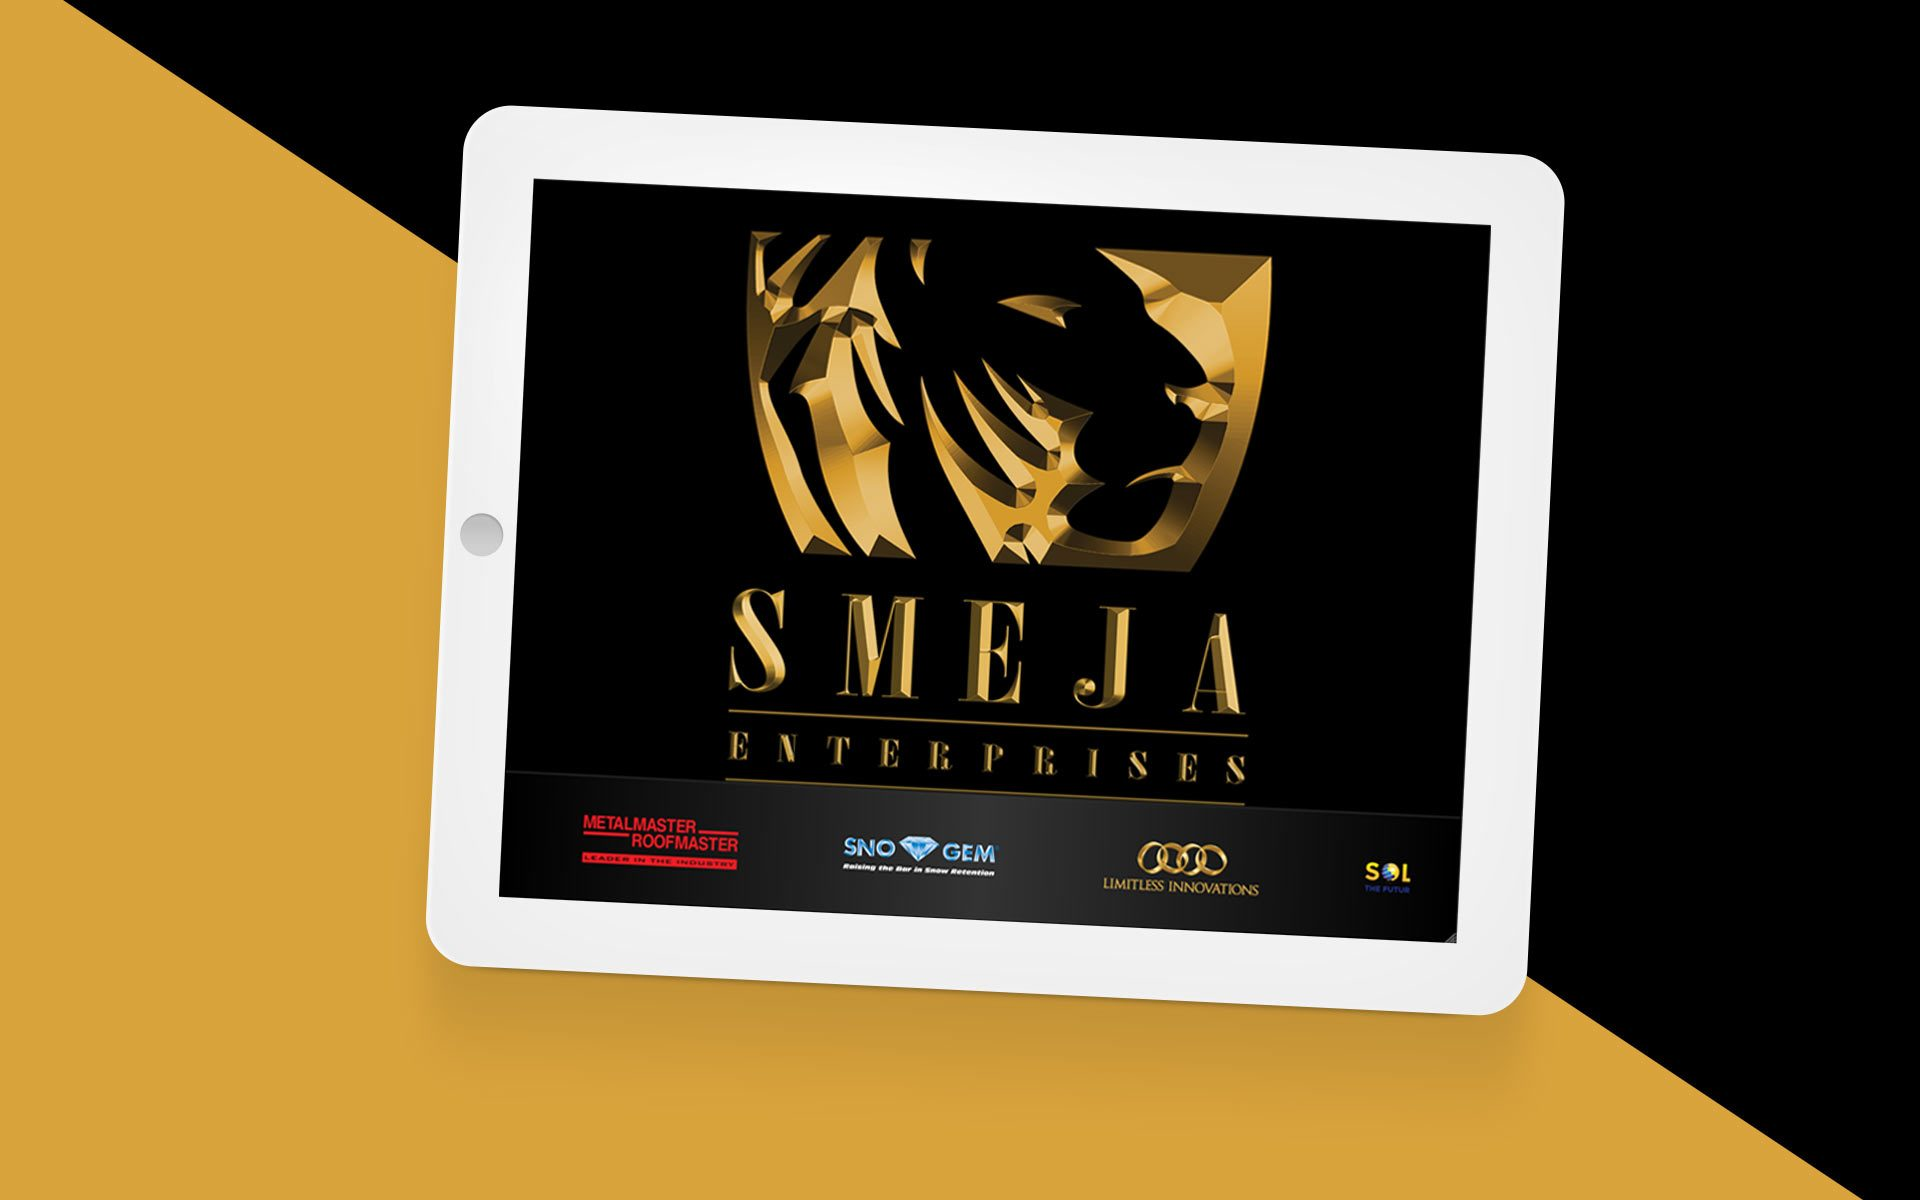 Smeja Enterprises Website Featured Image